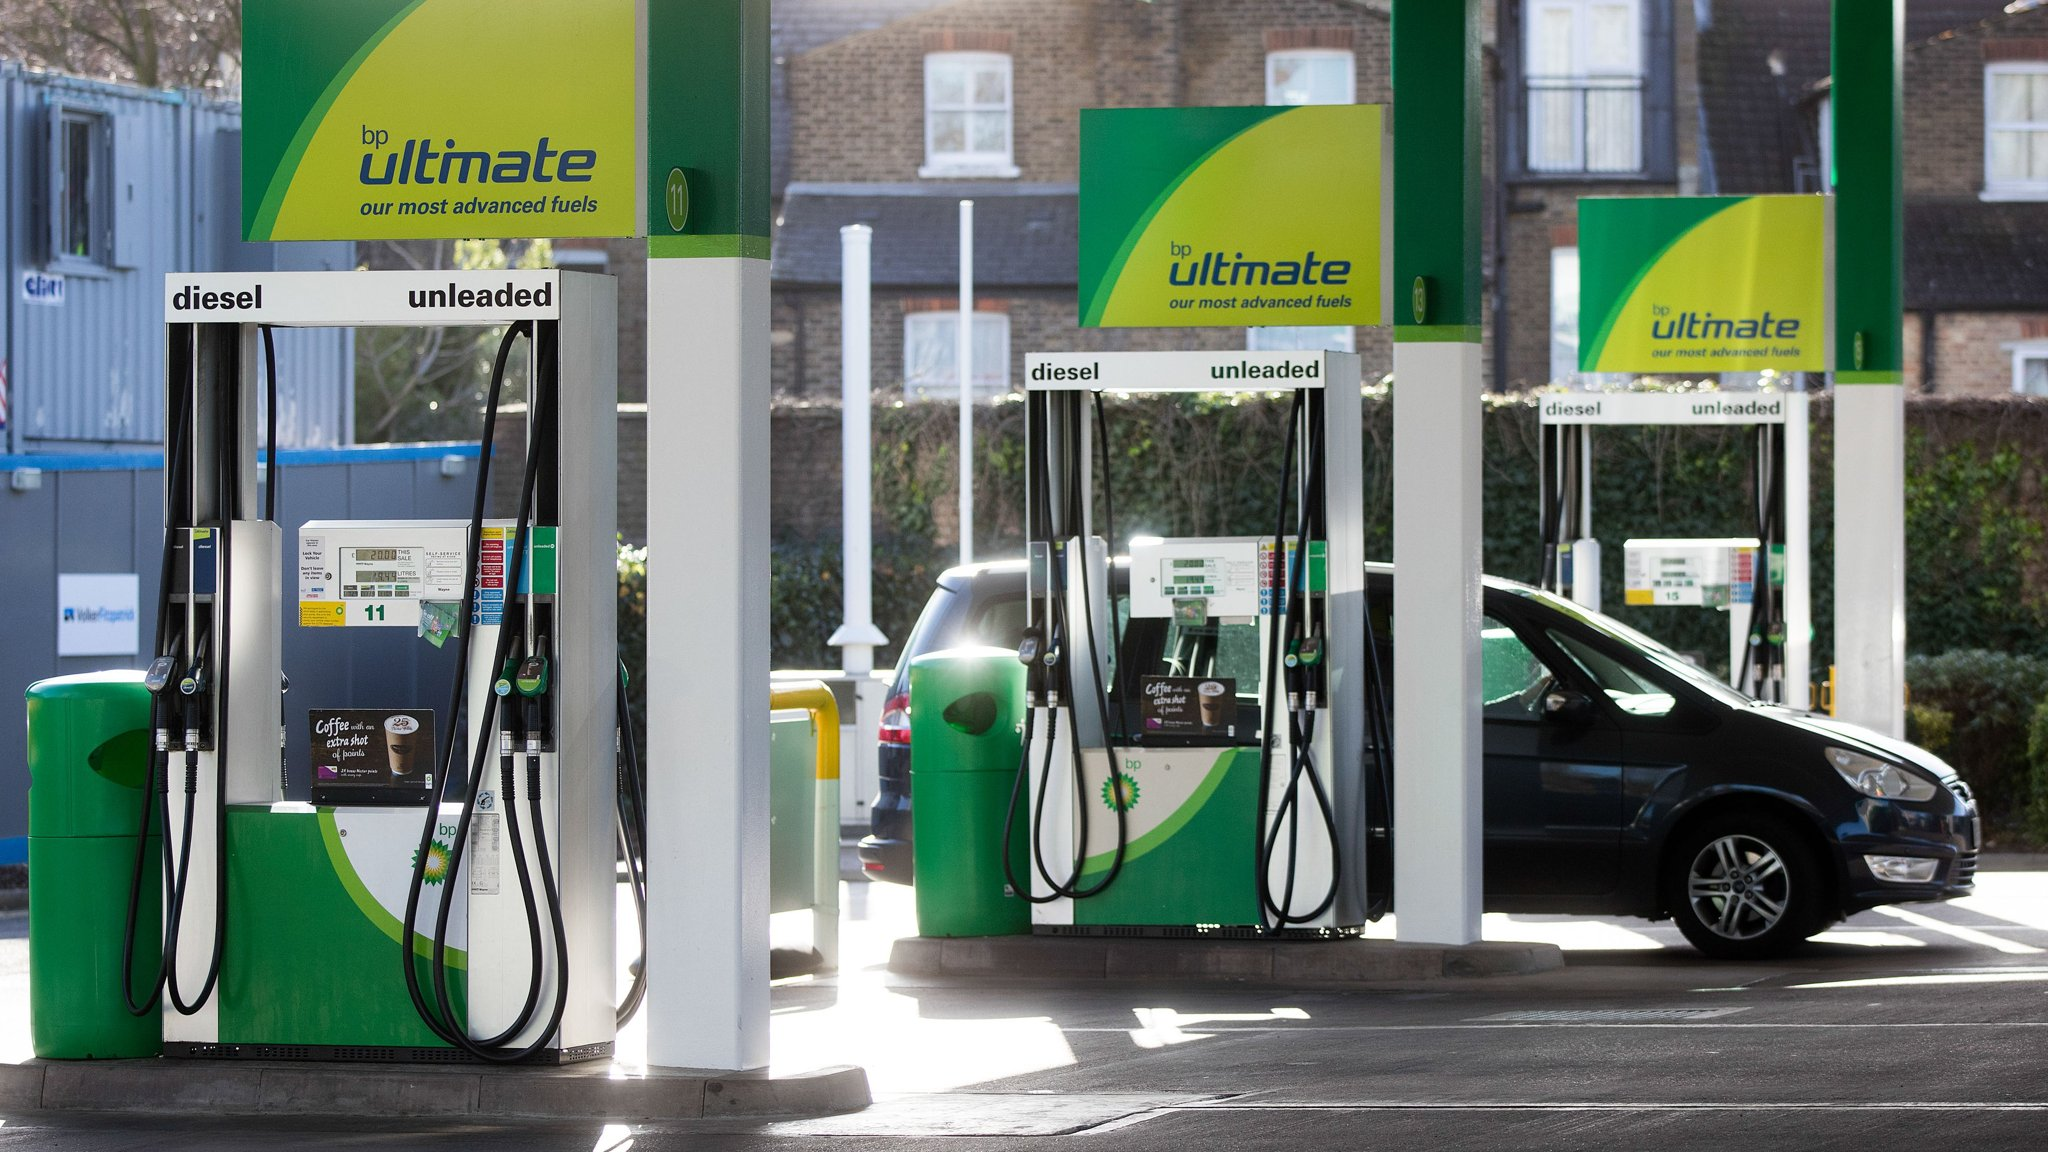 BP buys 527 Australian fuel stations for $1 3bn | Financial